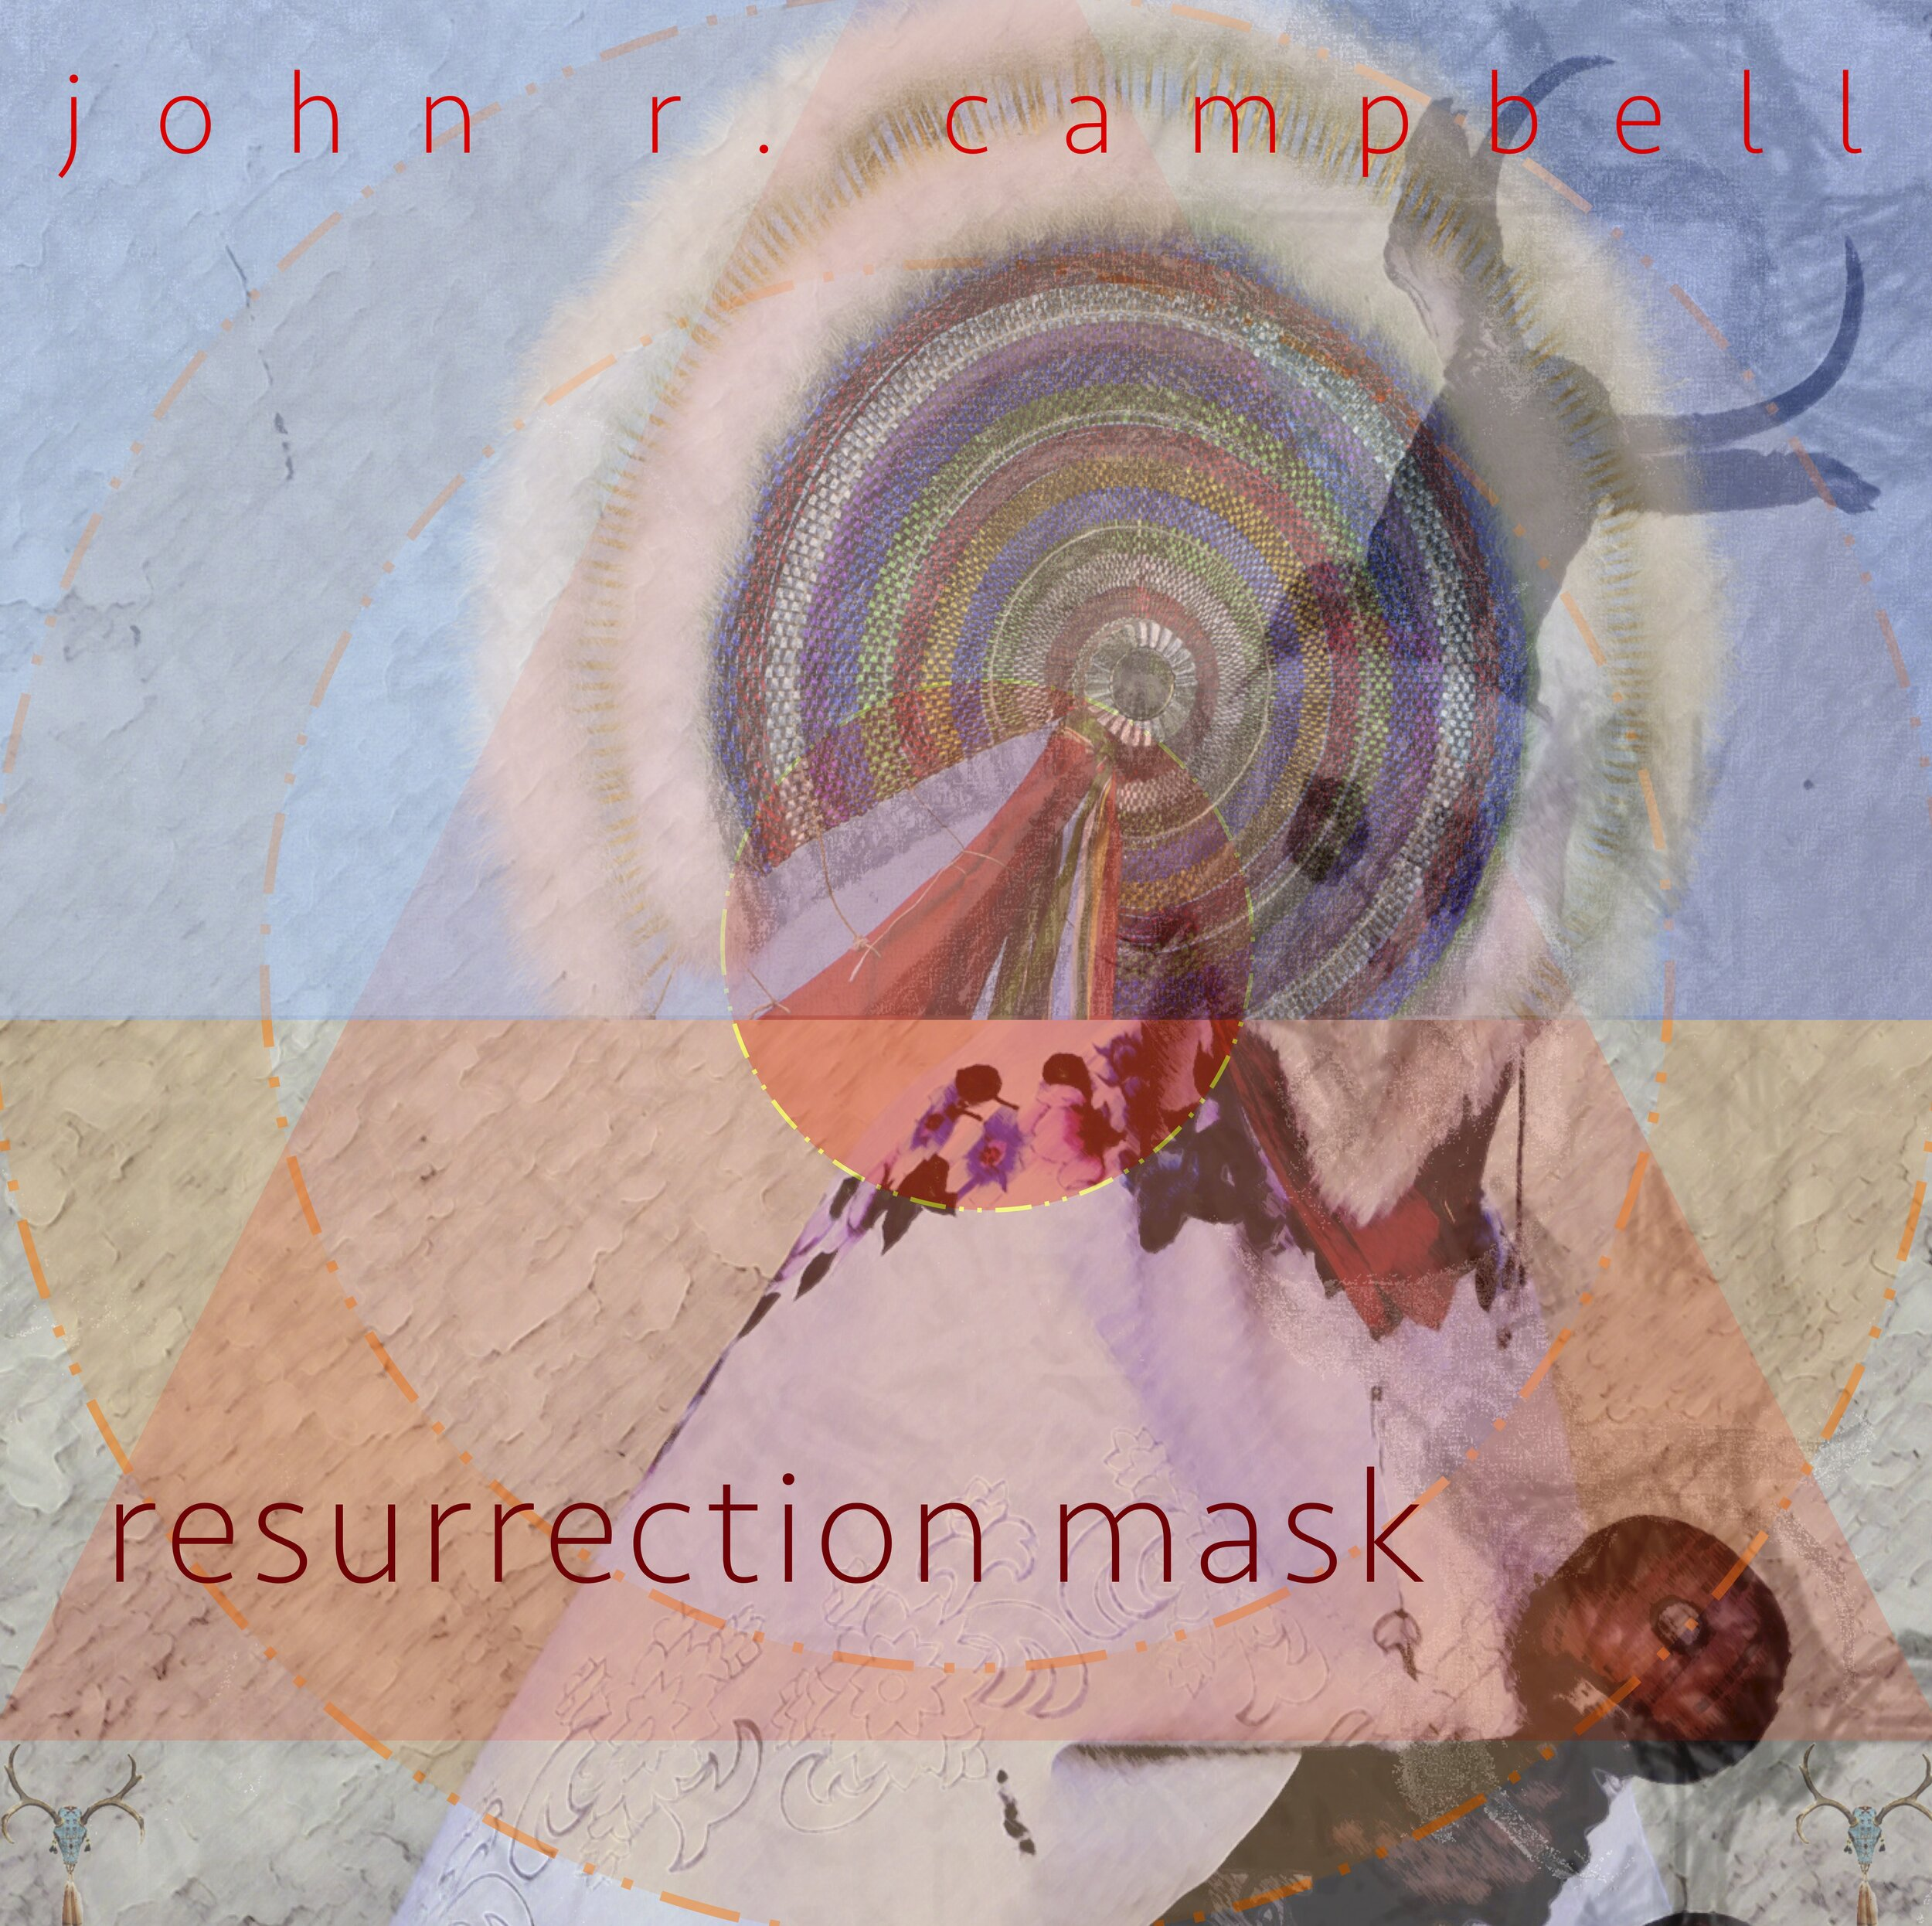 resurrection mask - Click on the album cover for original experimental roots music: guitar, electronics, bass, keyboards, & drums.